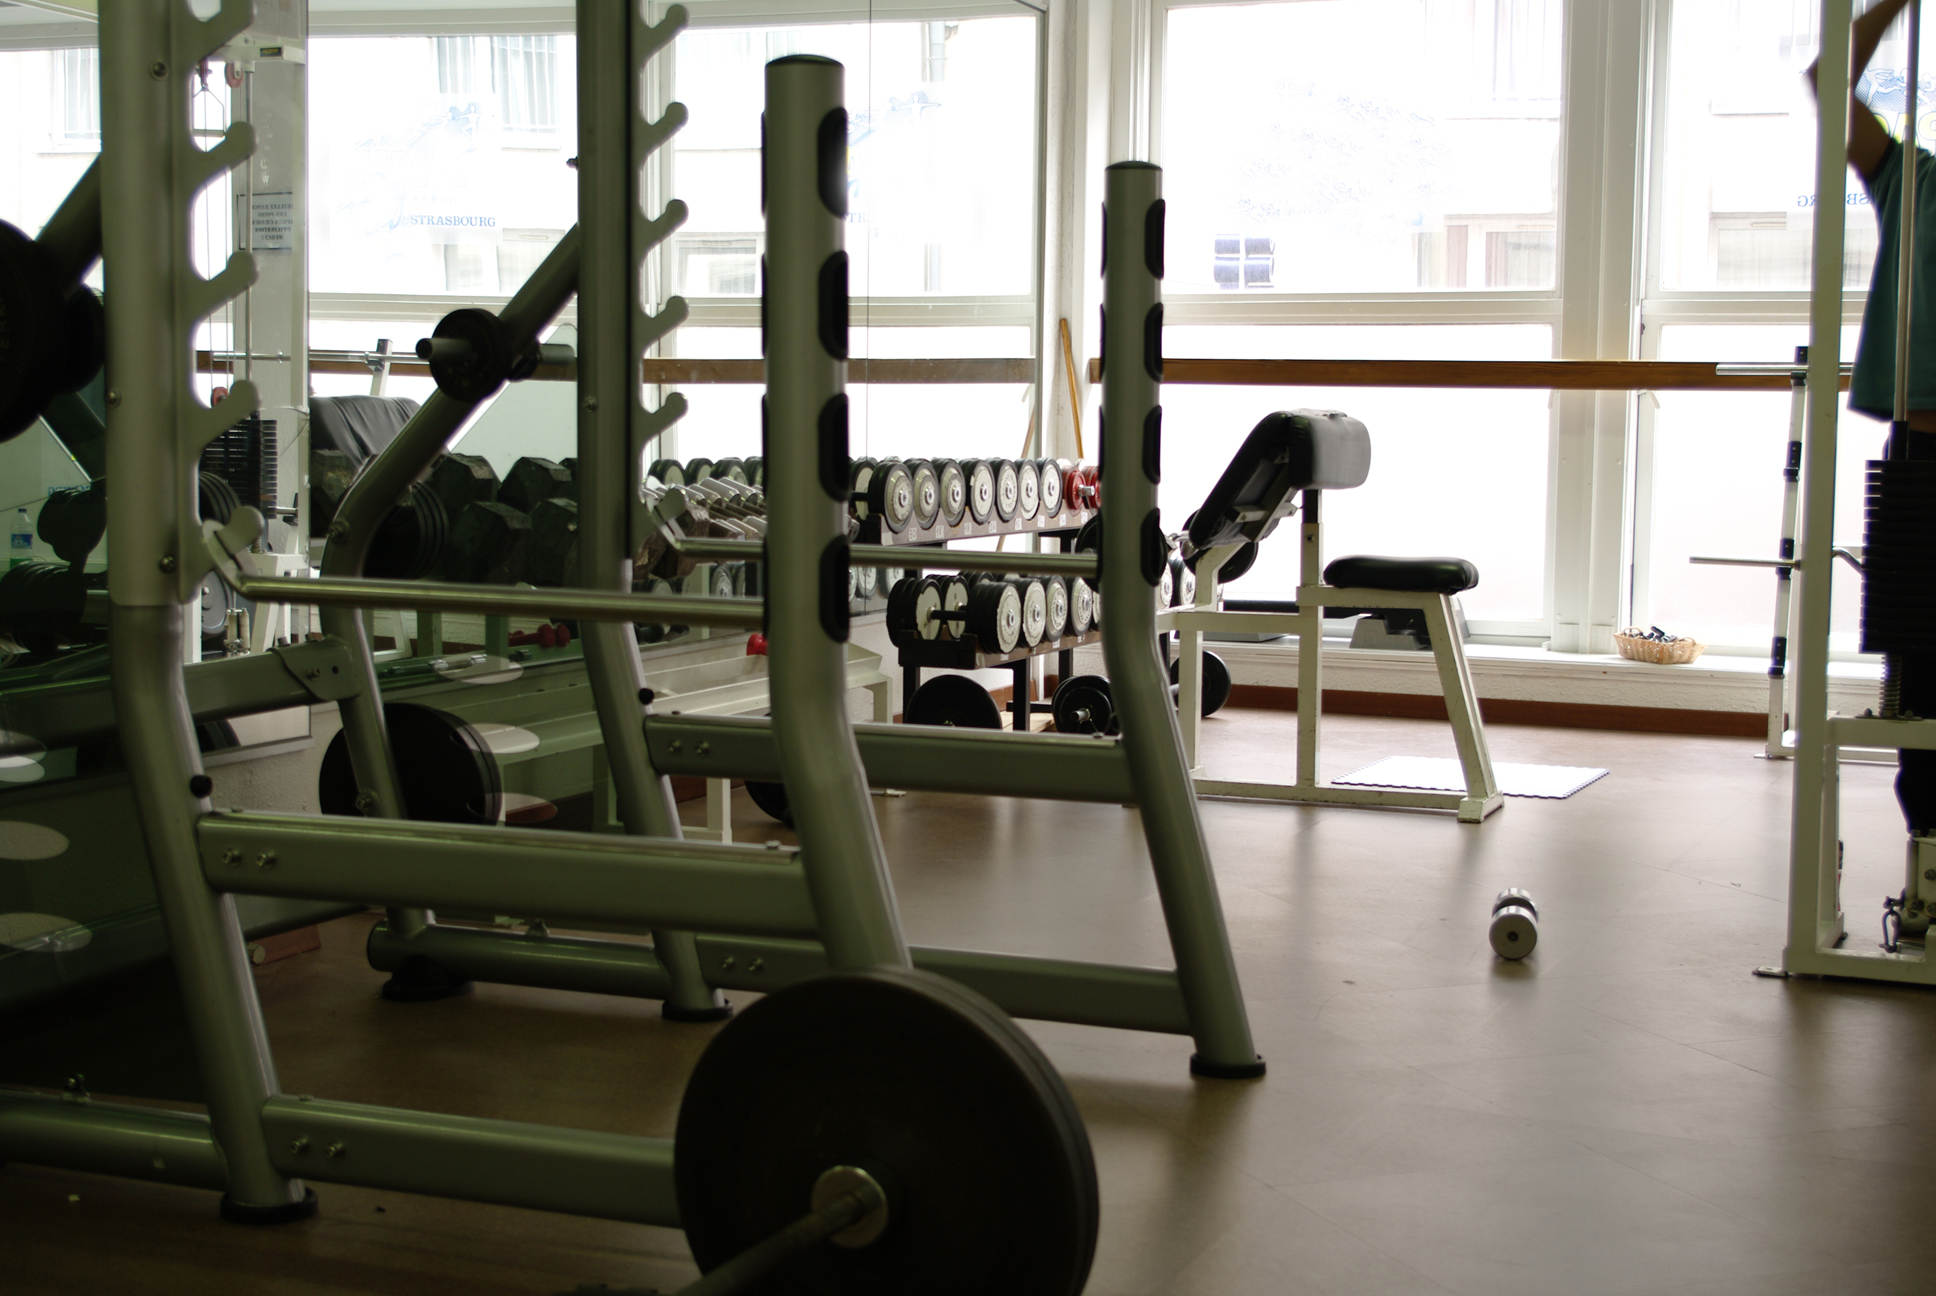 Fitness center, Sport, Room, Steel, Weights, HQ Photo